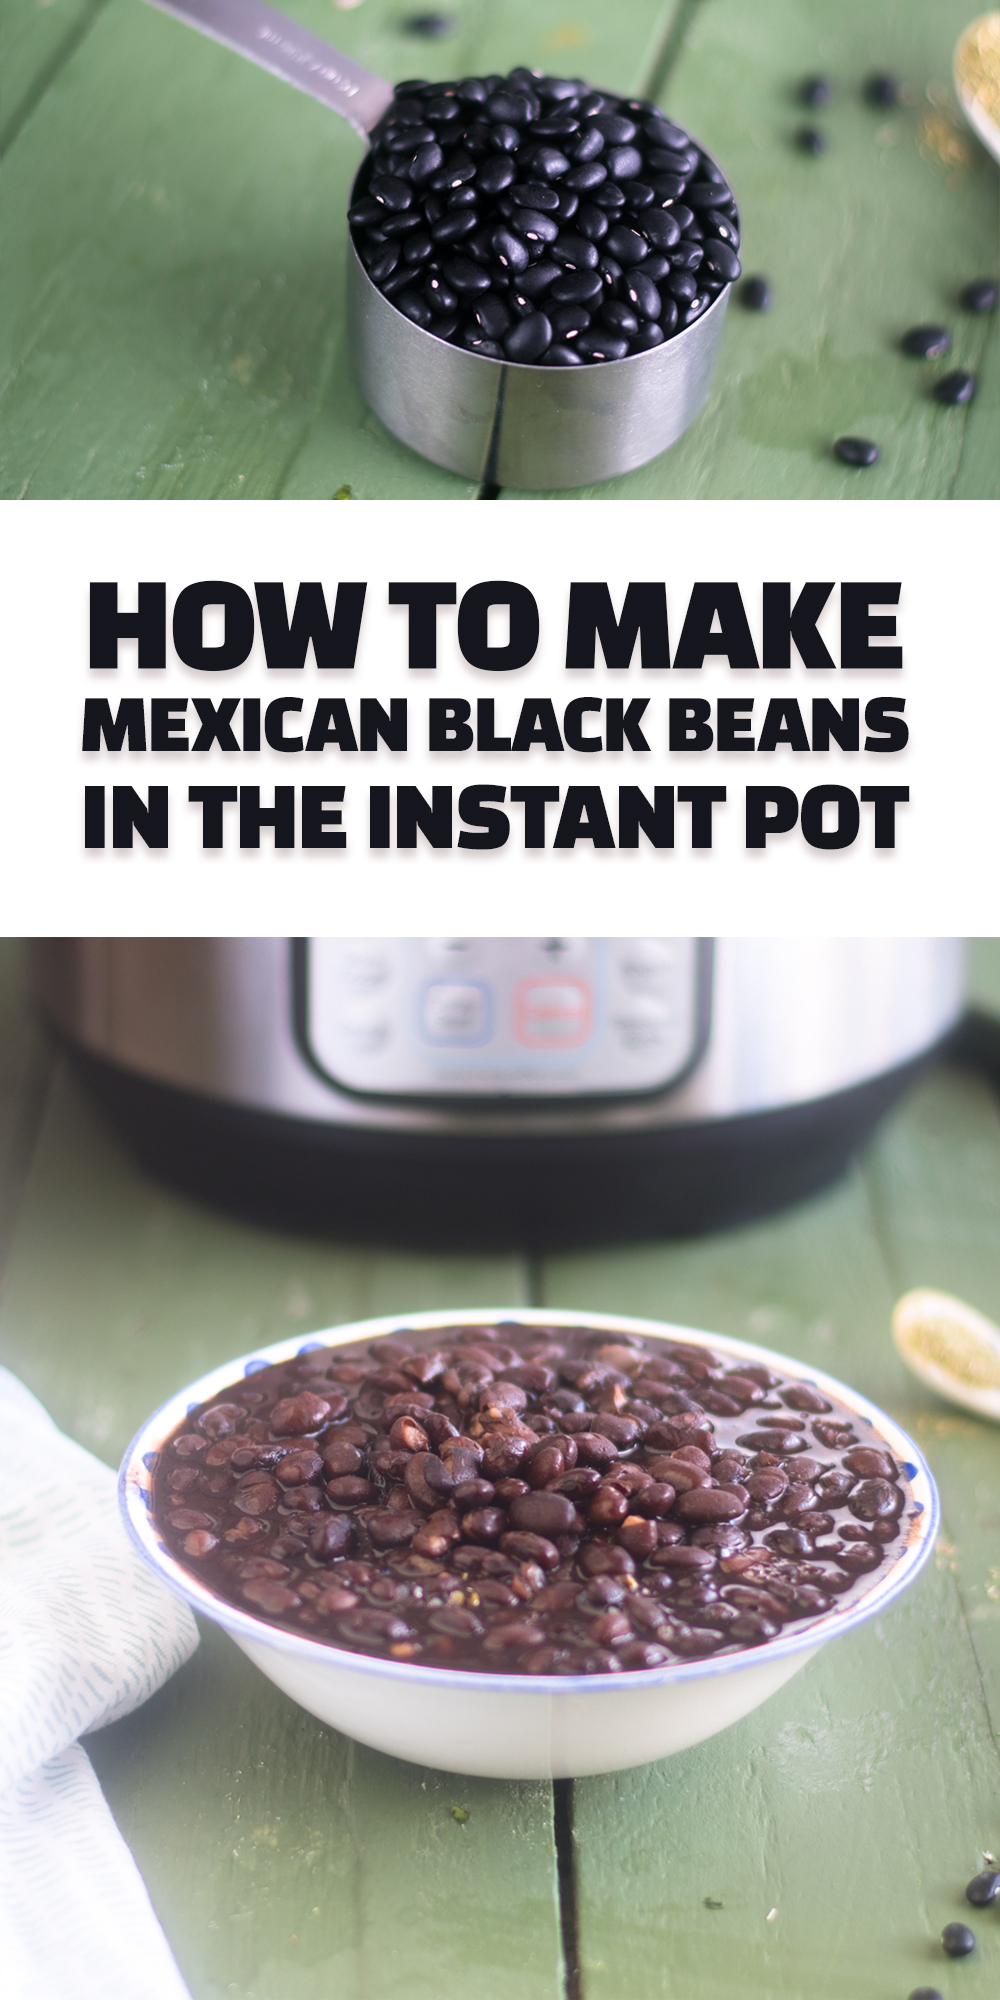 A guide on how to make Mexican Black Beans in the Instant Pot. #vegan #recipes #instantpot #Mexican #glutenfree #healthy #healthyrecipes #vegetarian